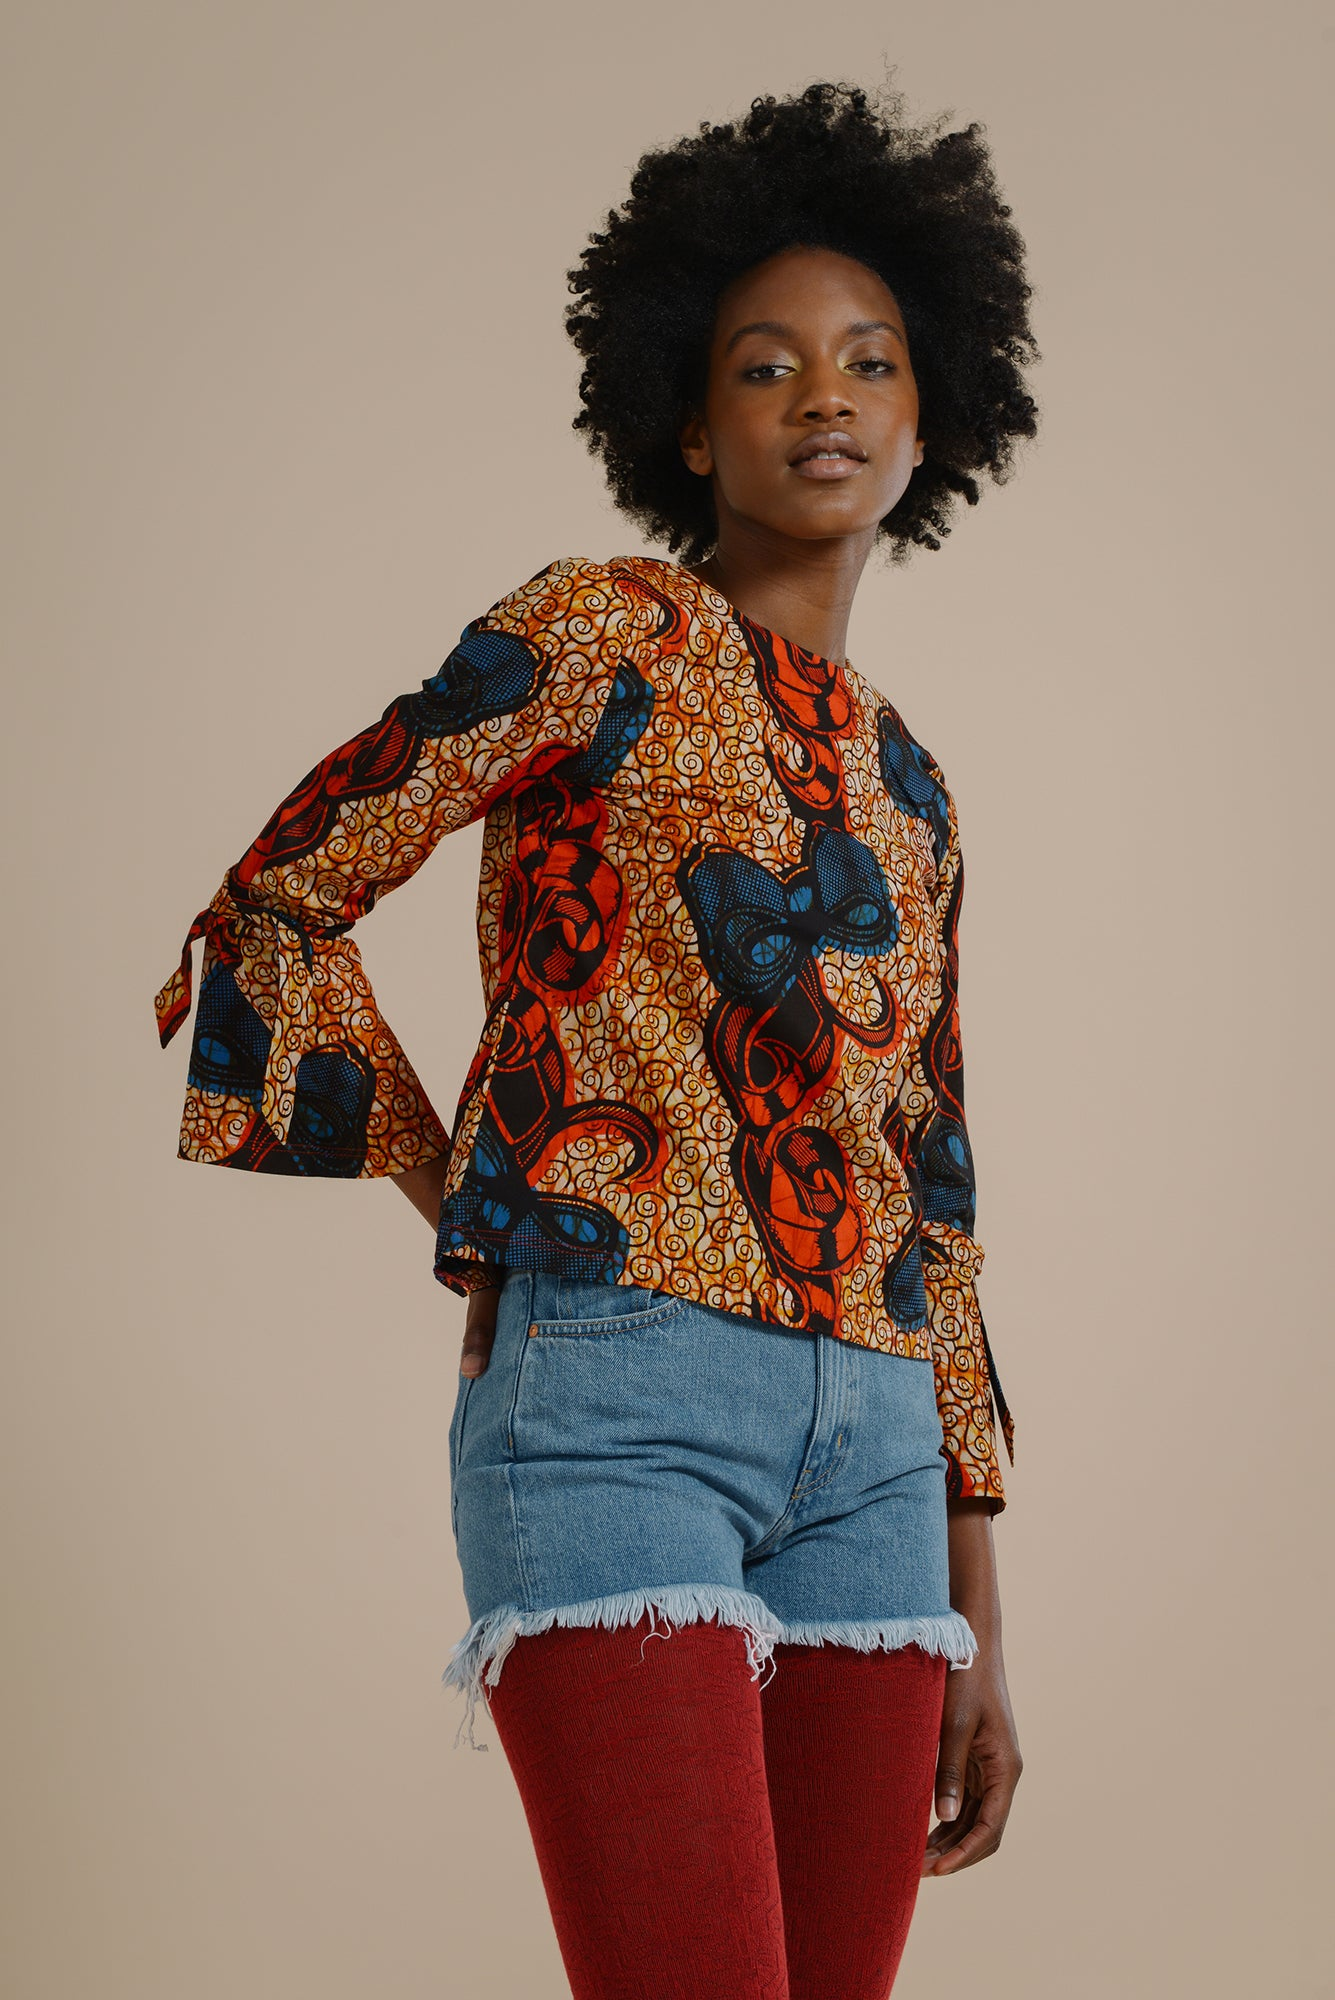 36d6469689bd95 ... Likoma long bell sleeve top with V back in red and blue bow - Mayamiko  Sustainable ...